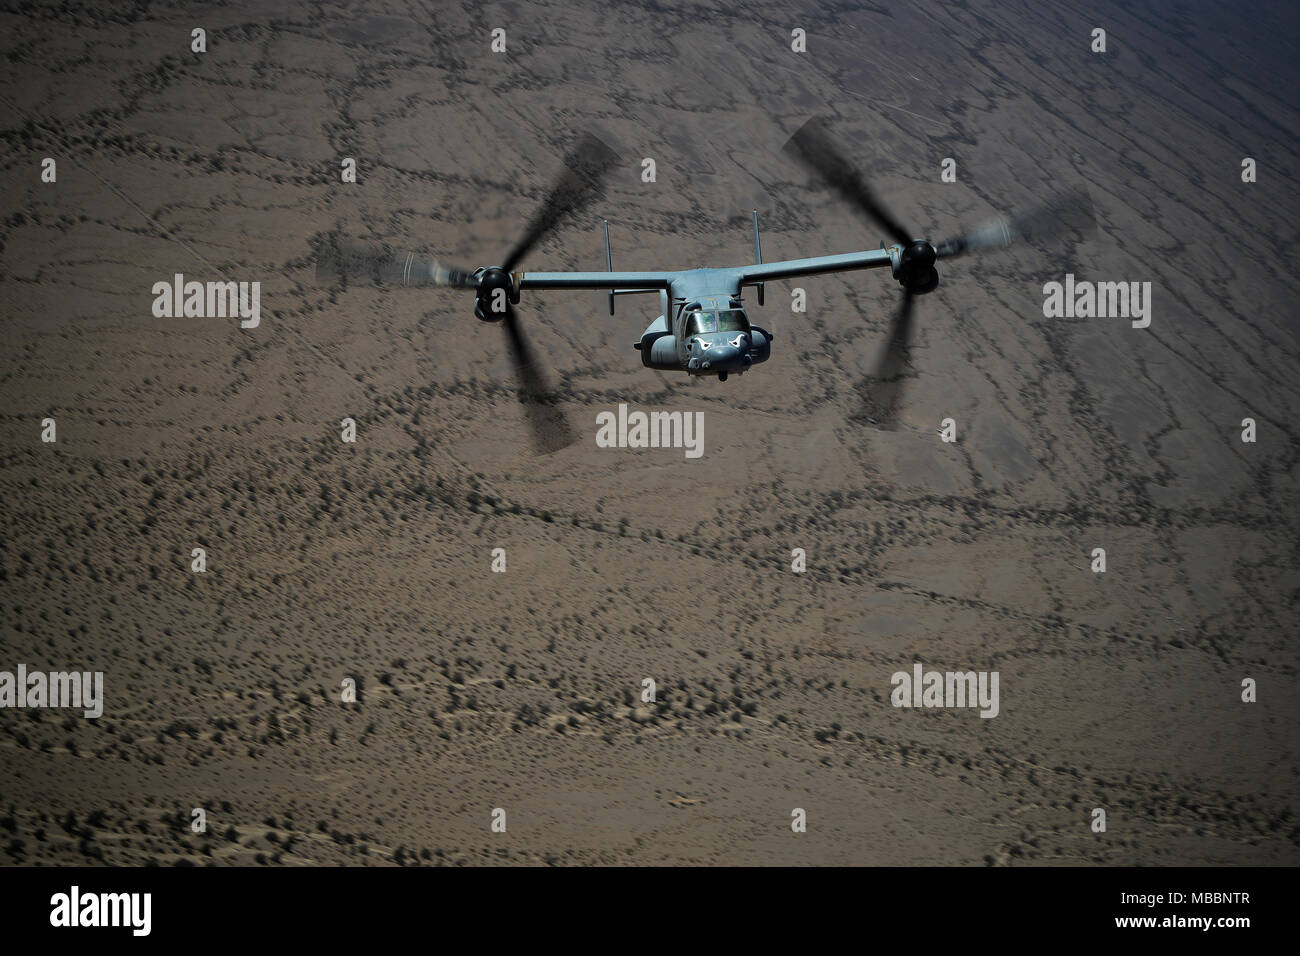 Rq 7 Stock Photos Images Alamy V 22 Osprey Engine Diagram A Mv With Marine Aviation Weapons And Tactics Squadron 1 Participates In